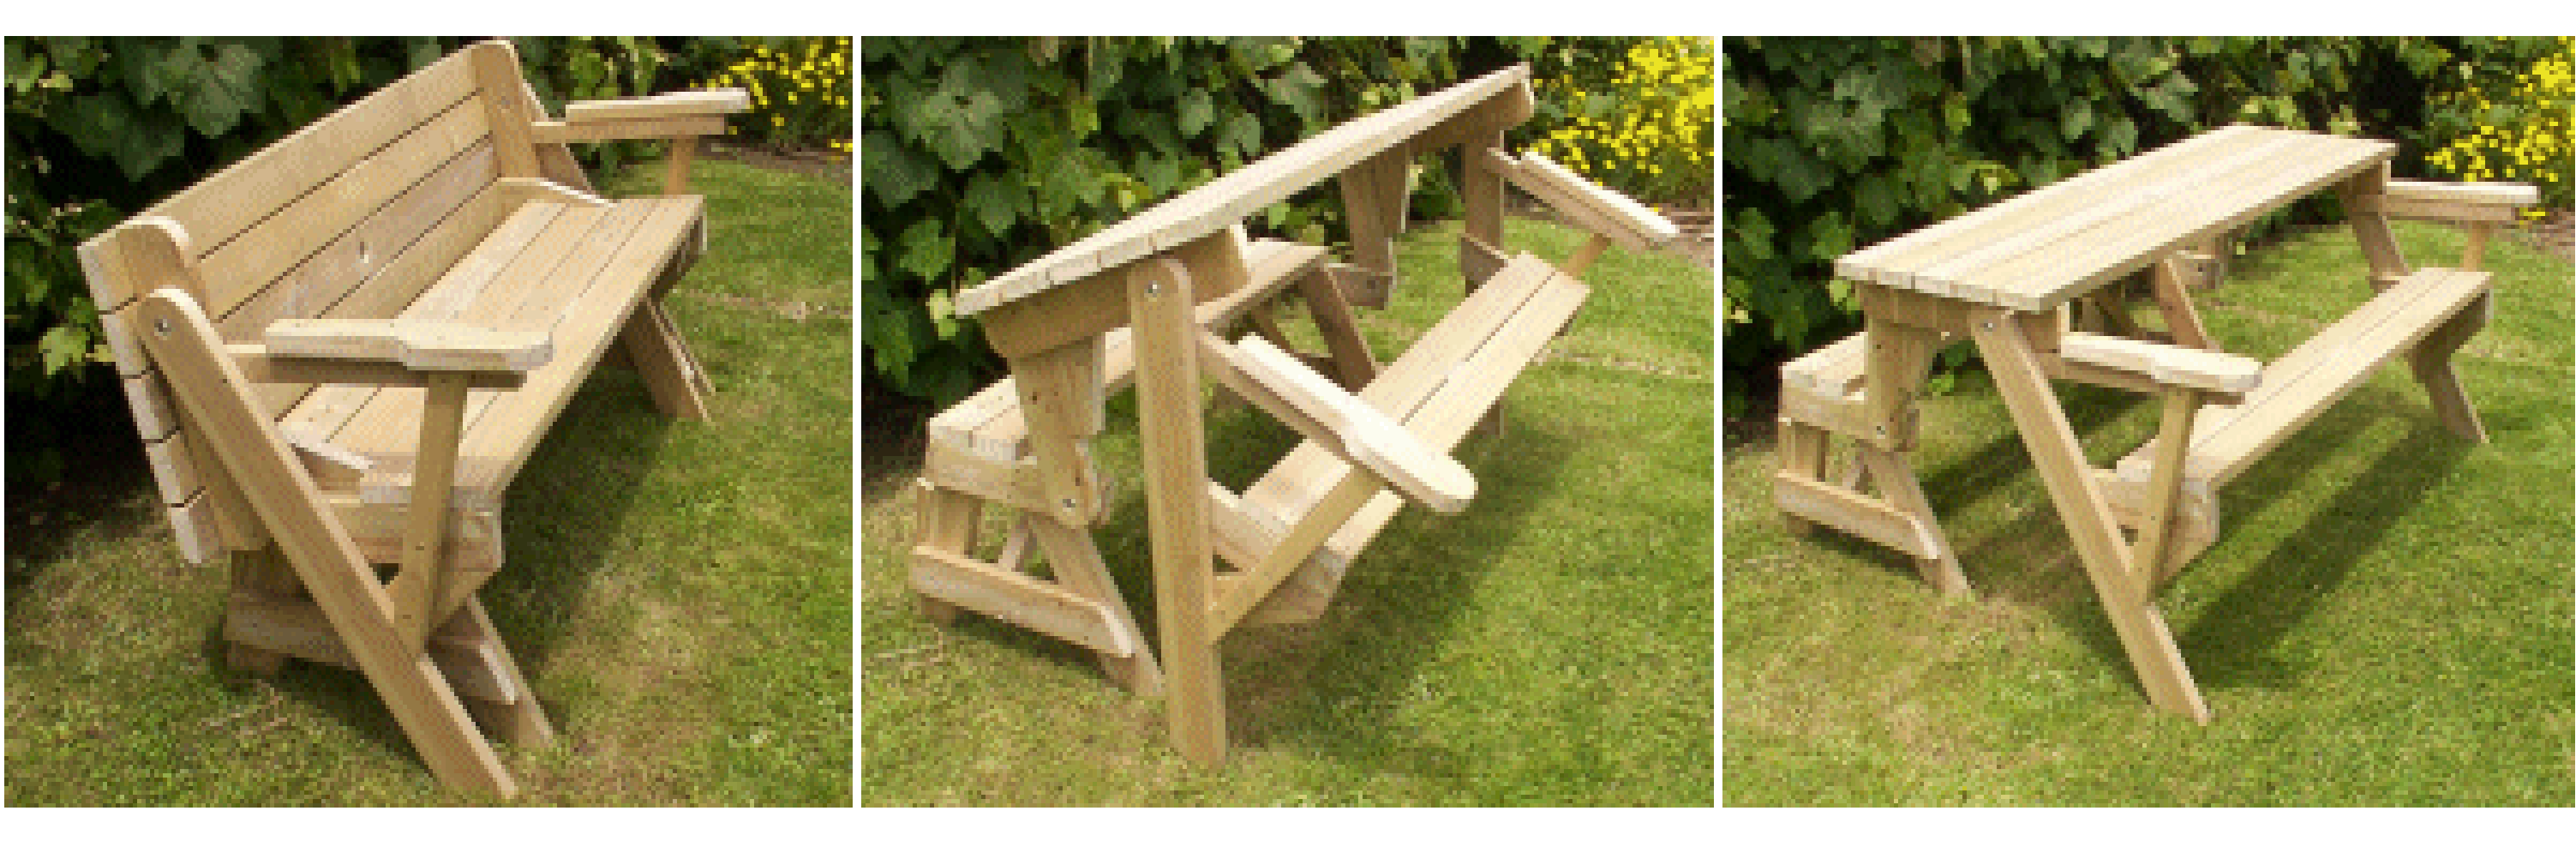 Bench That Turns Into A Picnic Table Plans Picnic Table Plans